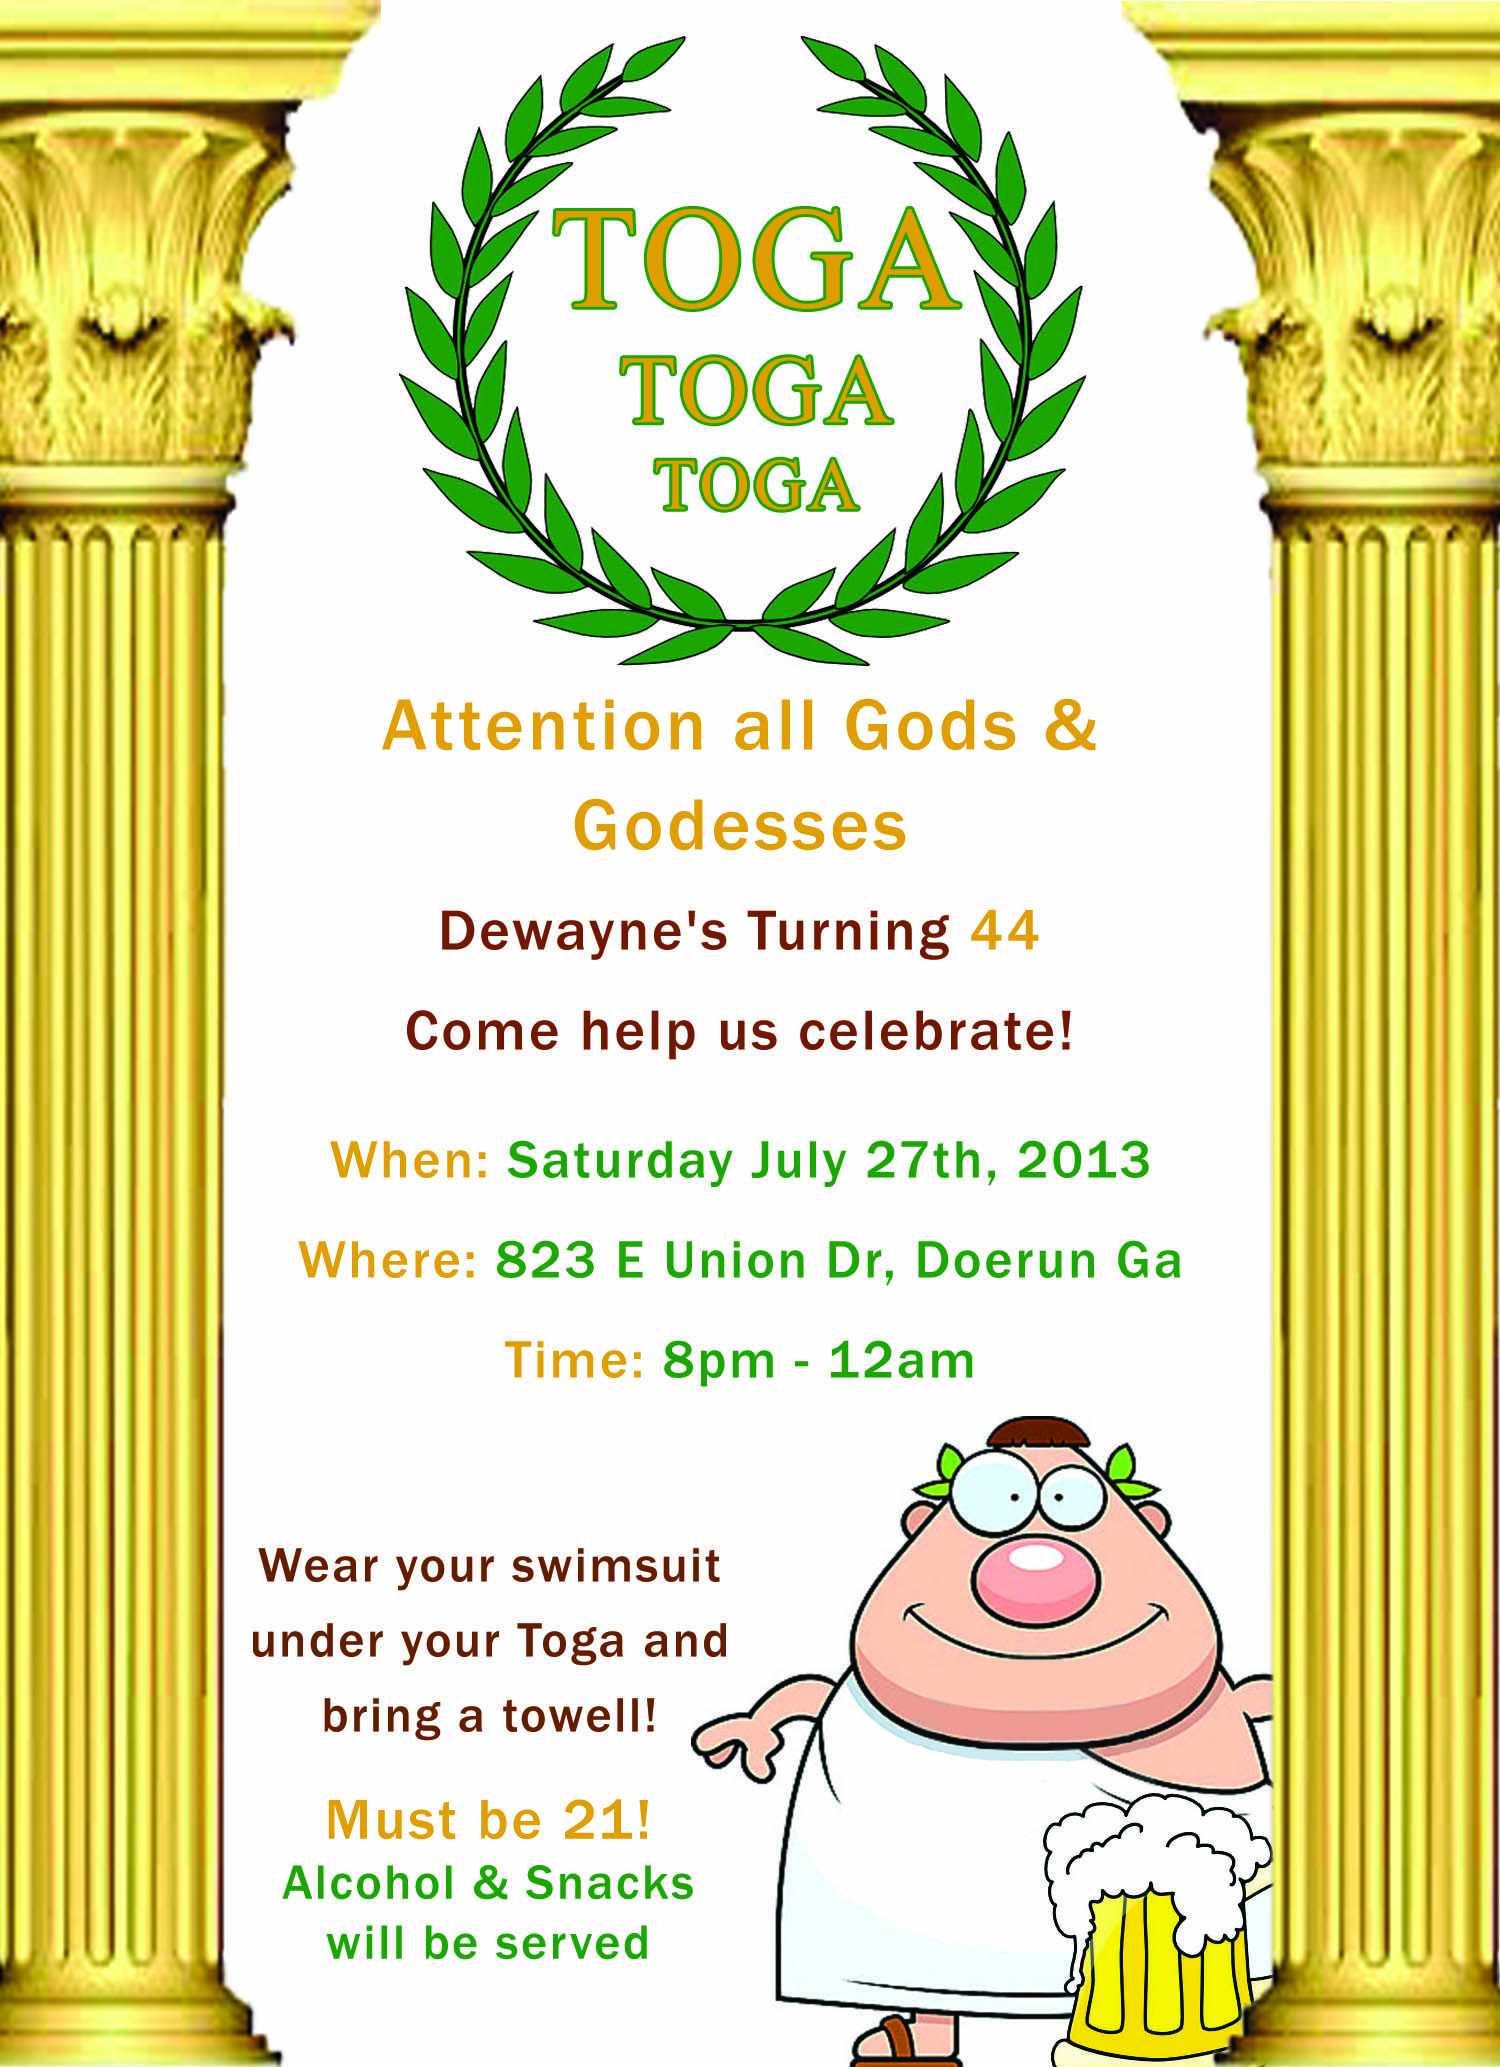 toga party invitations - Google Search  Party invite template